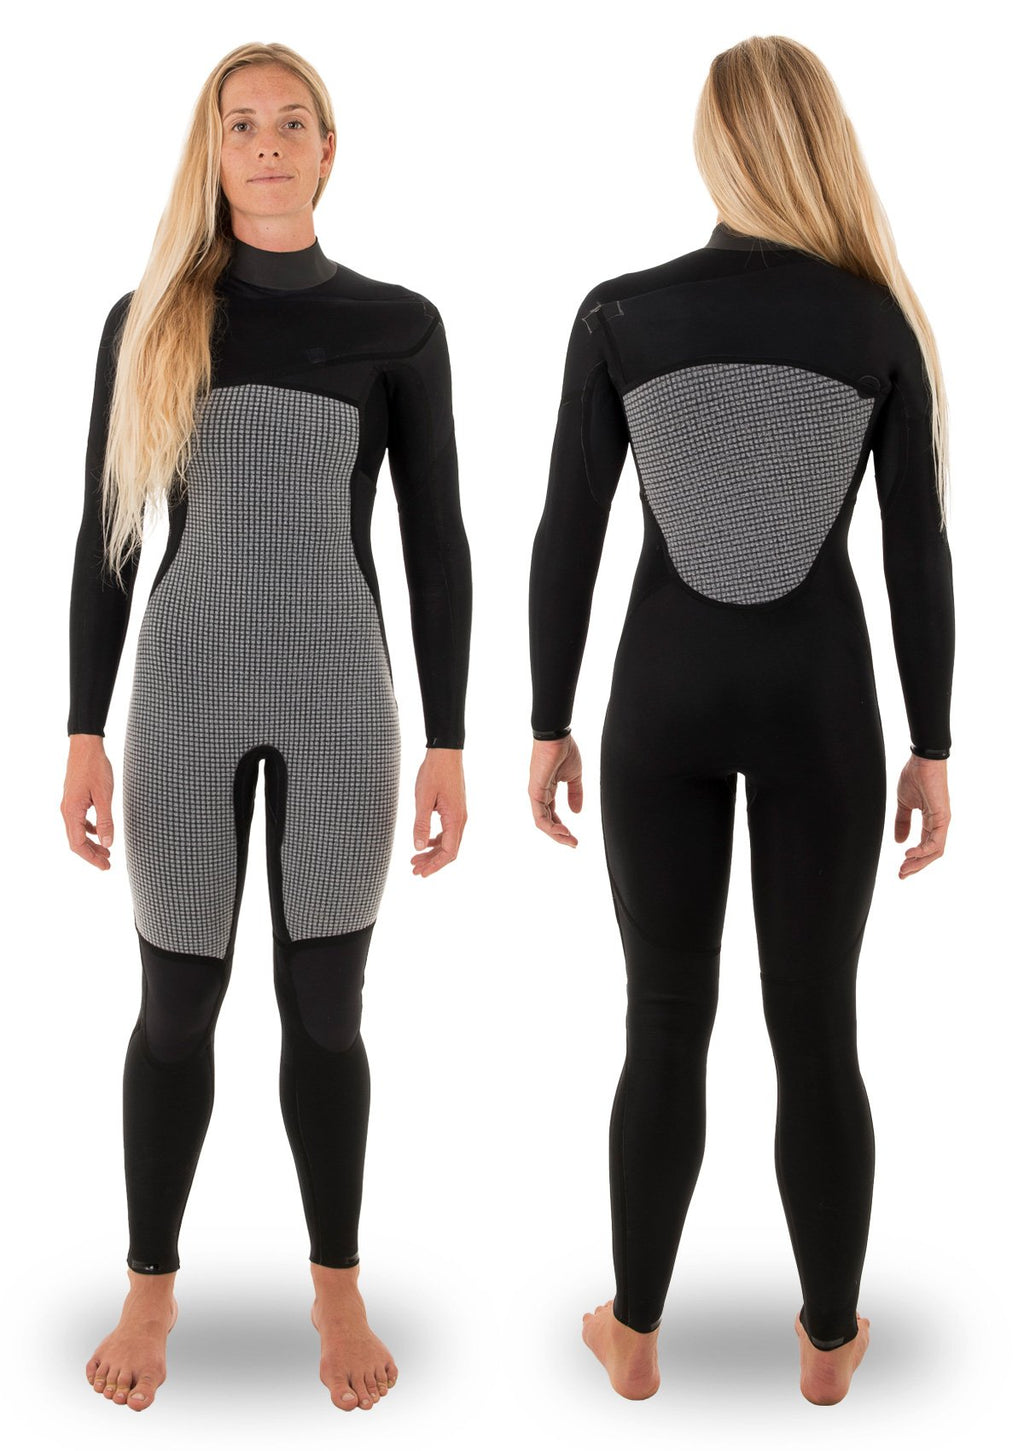 needessentials womens 5/4 chest zip thermal winter wetsuit surfing black non branded coldwater